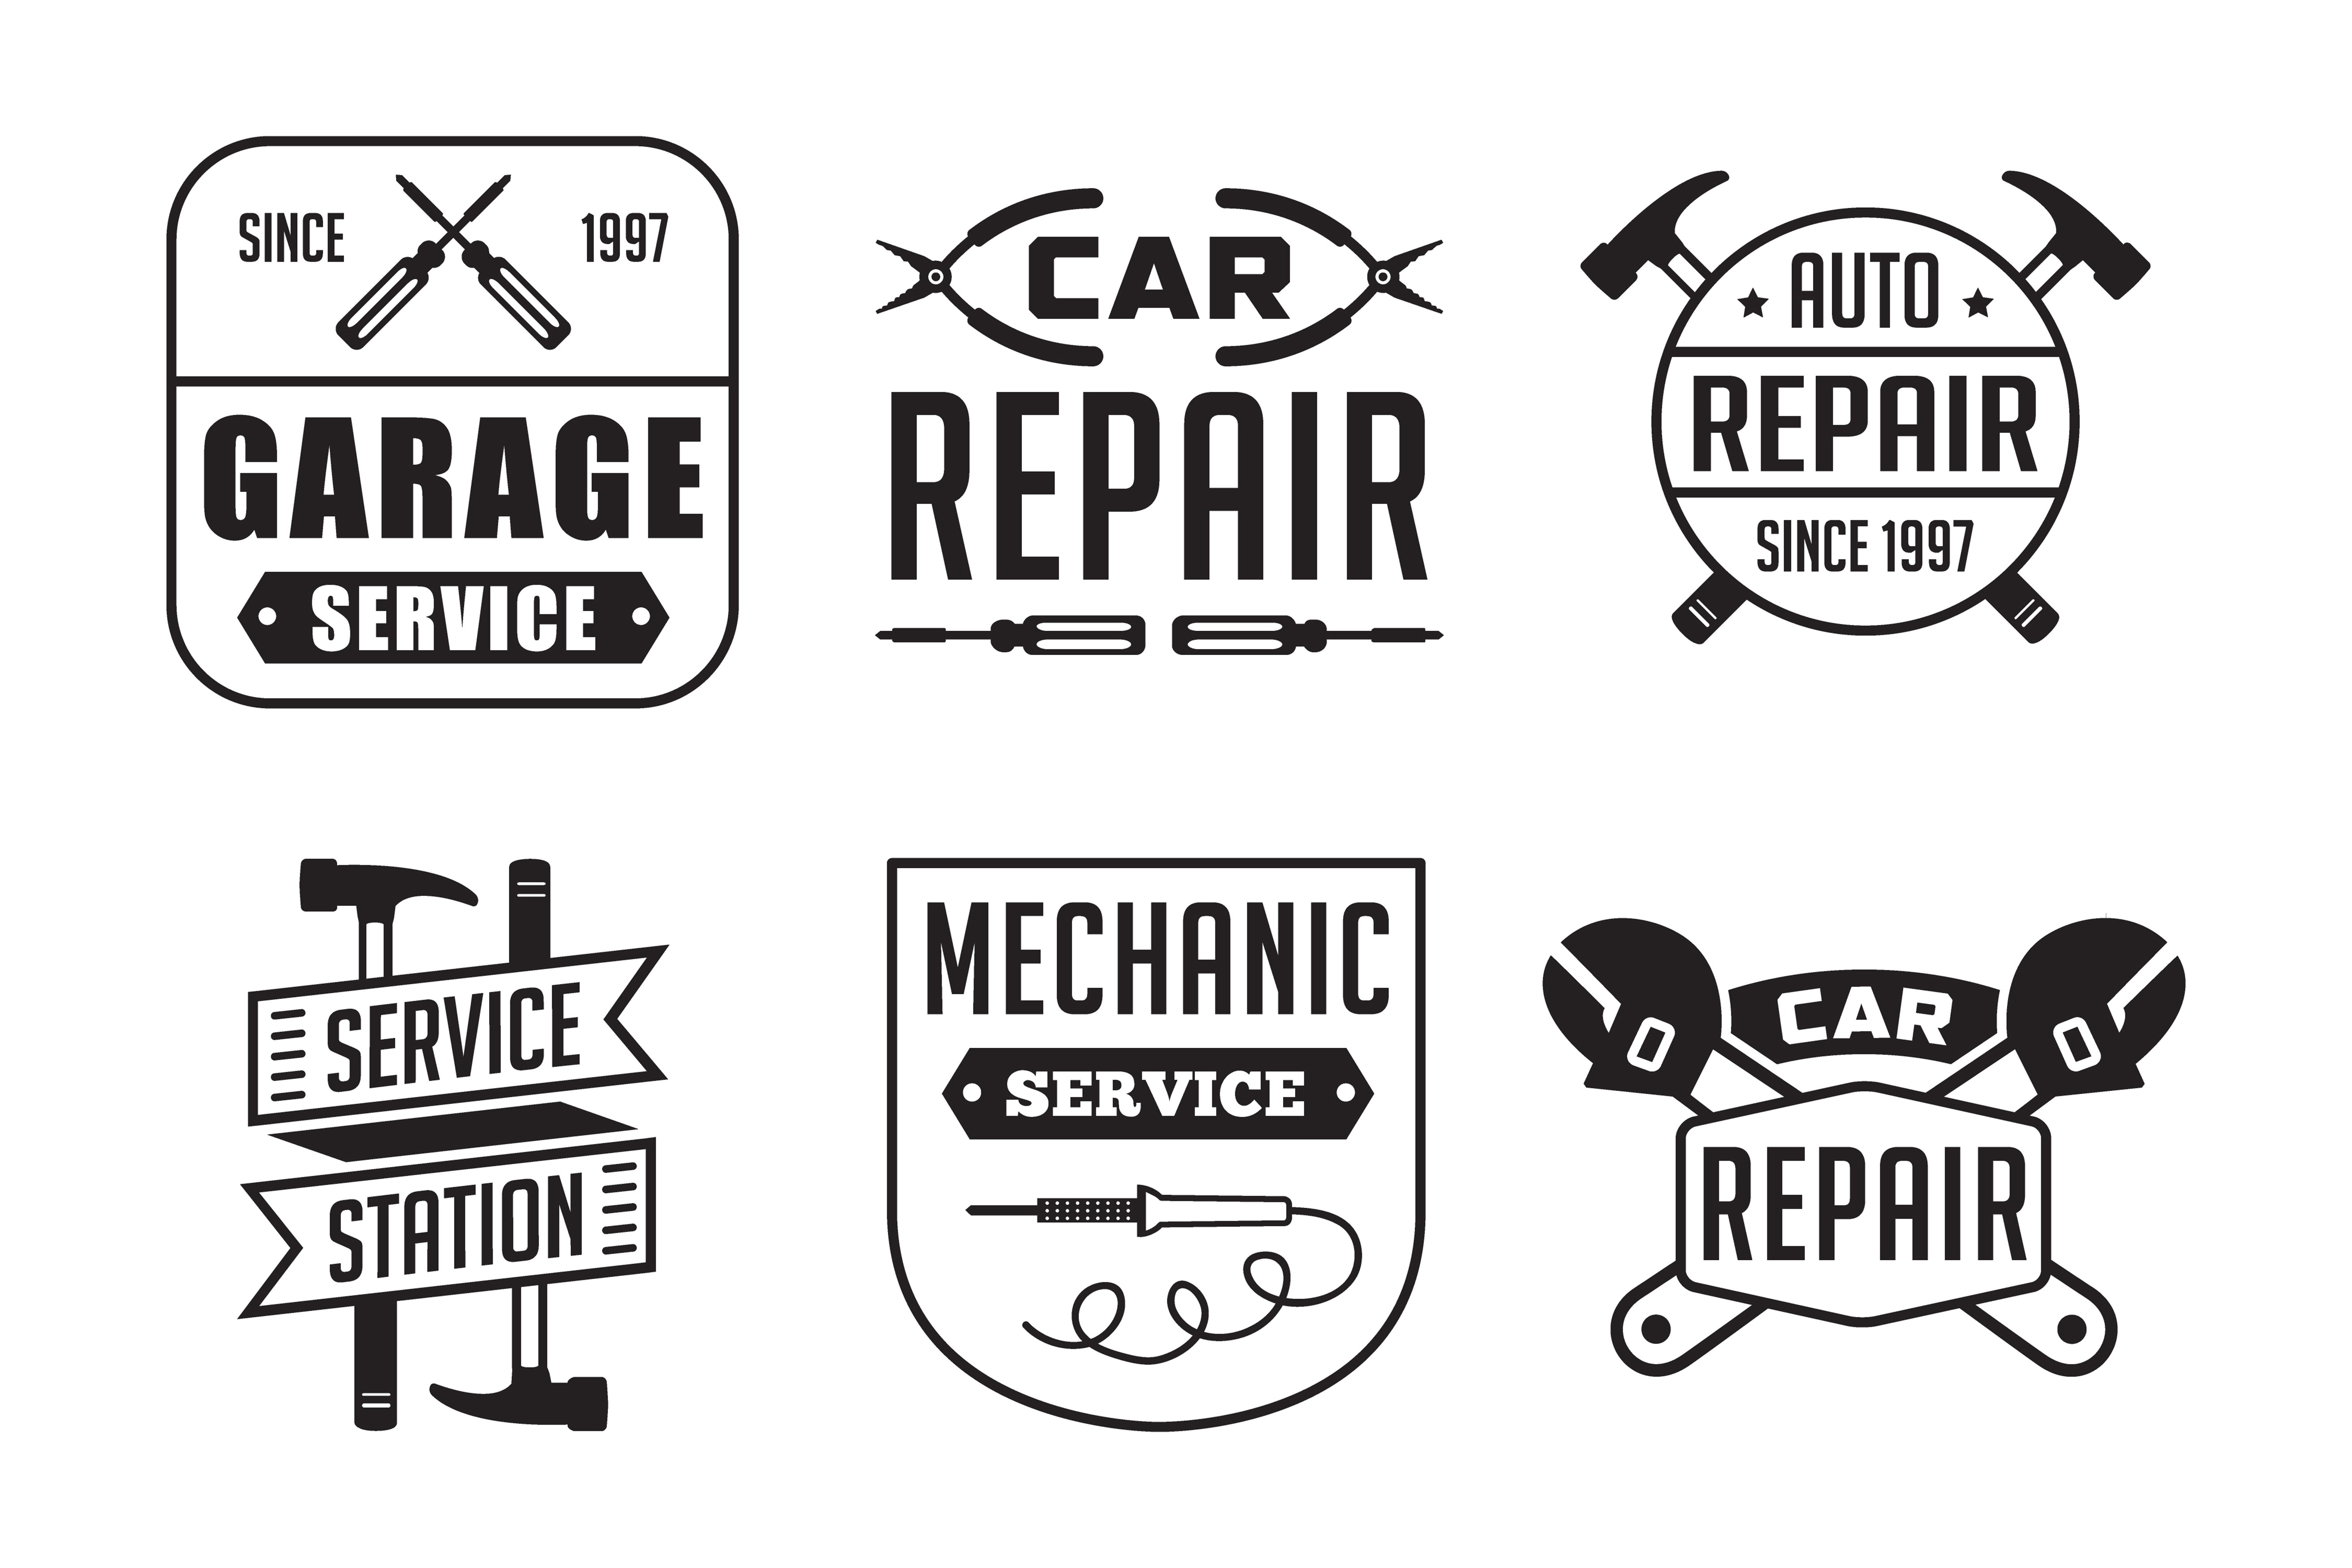 Automotive Service Record Template